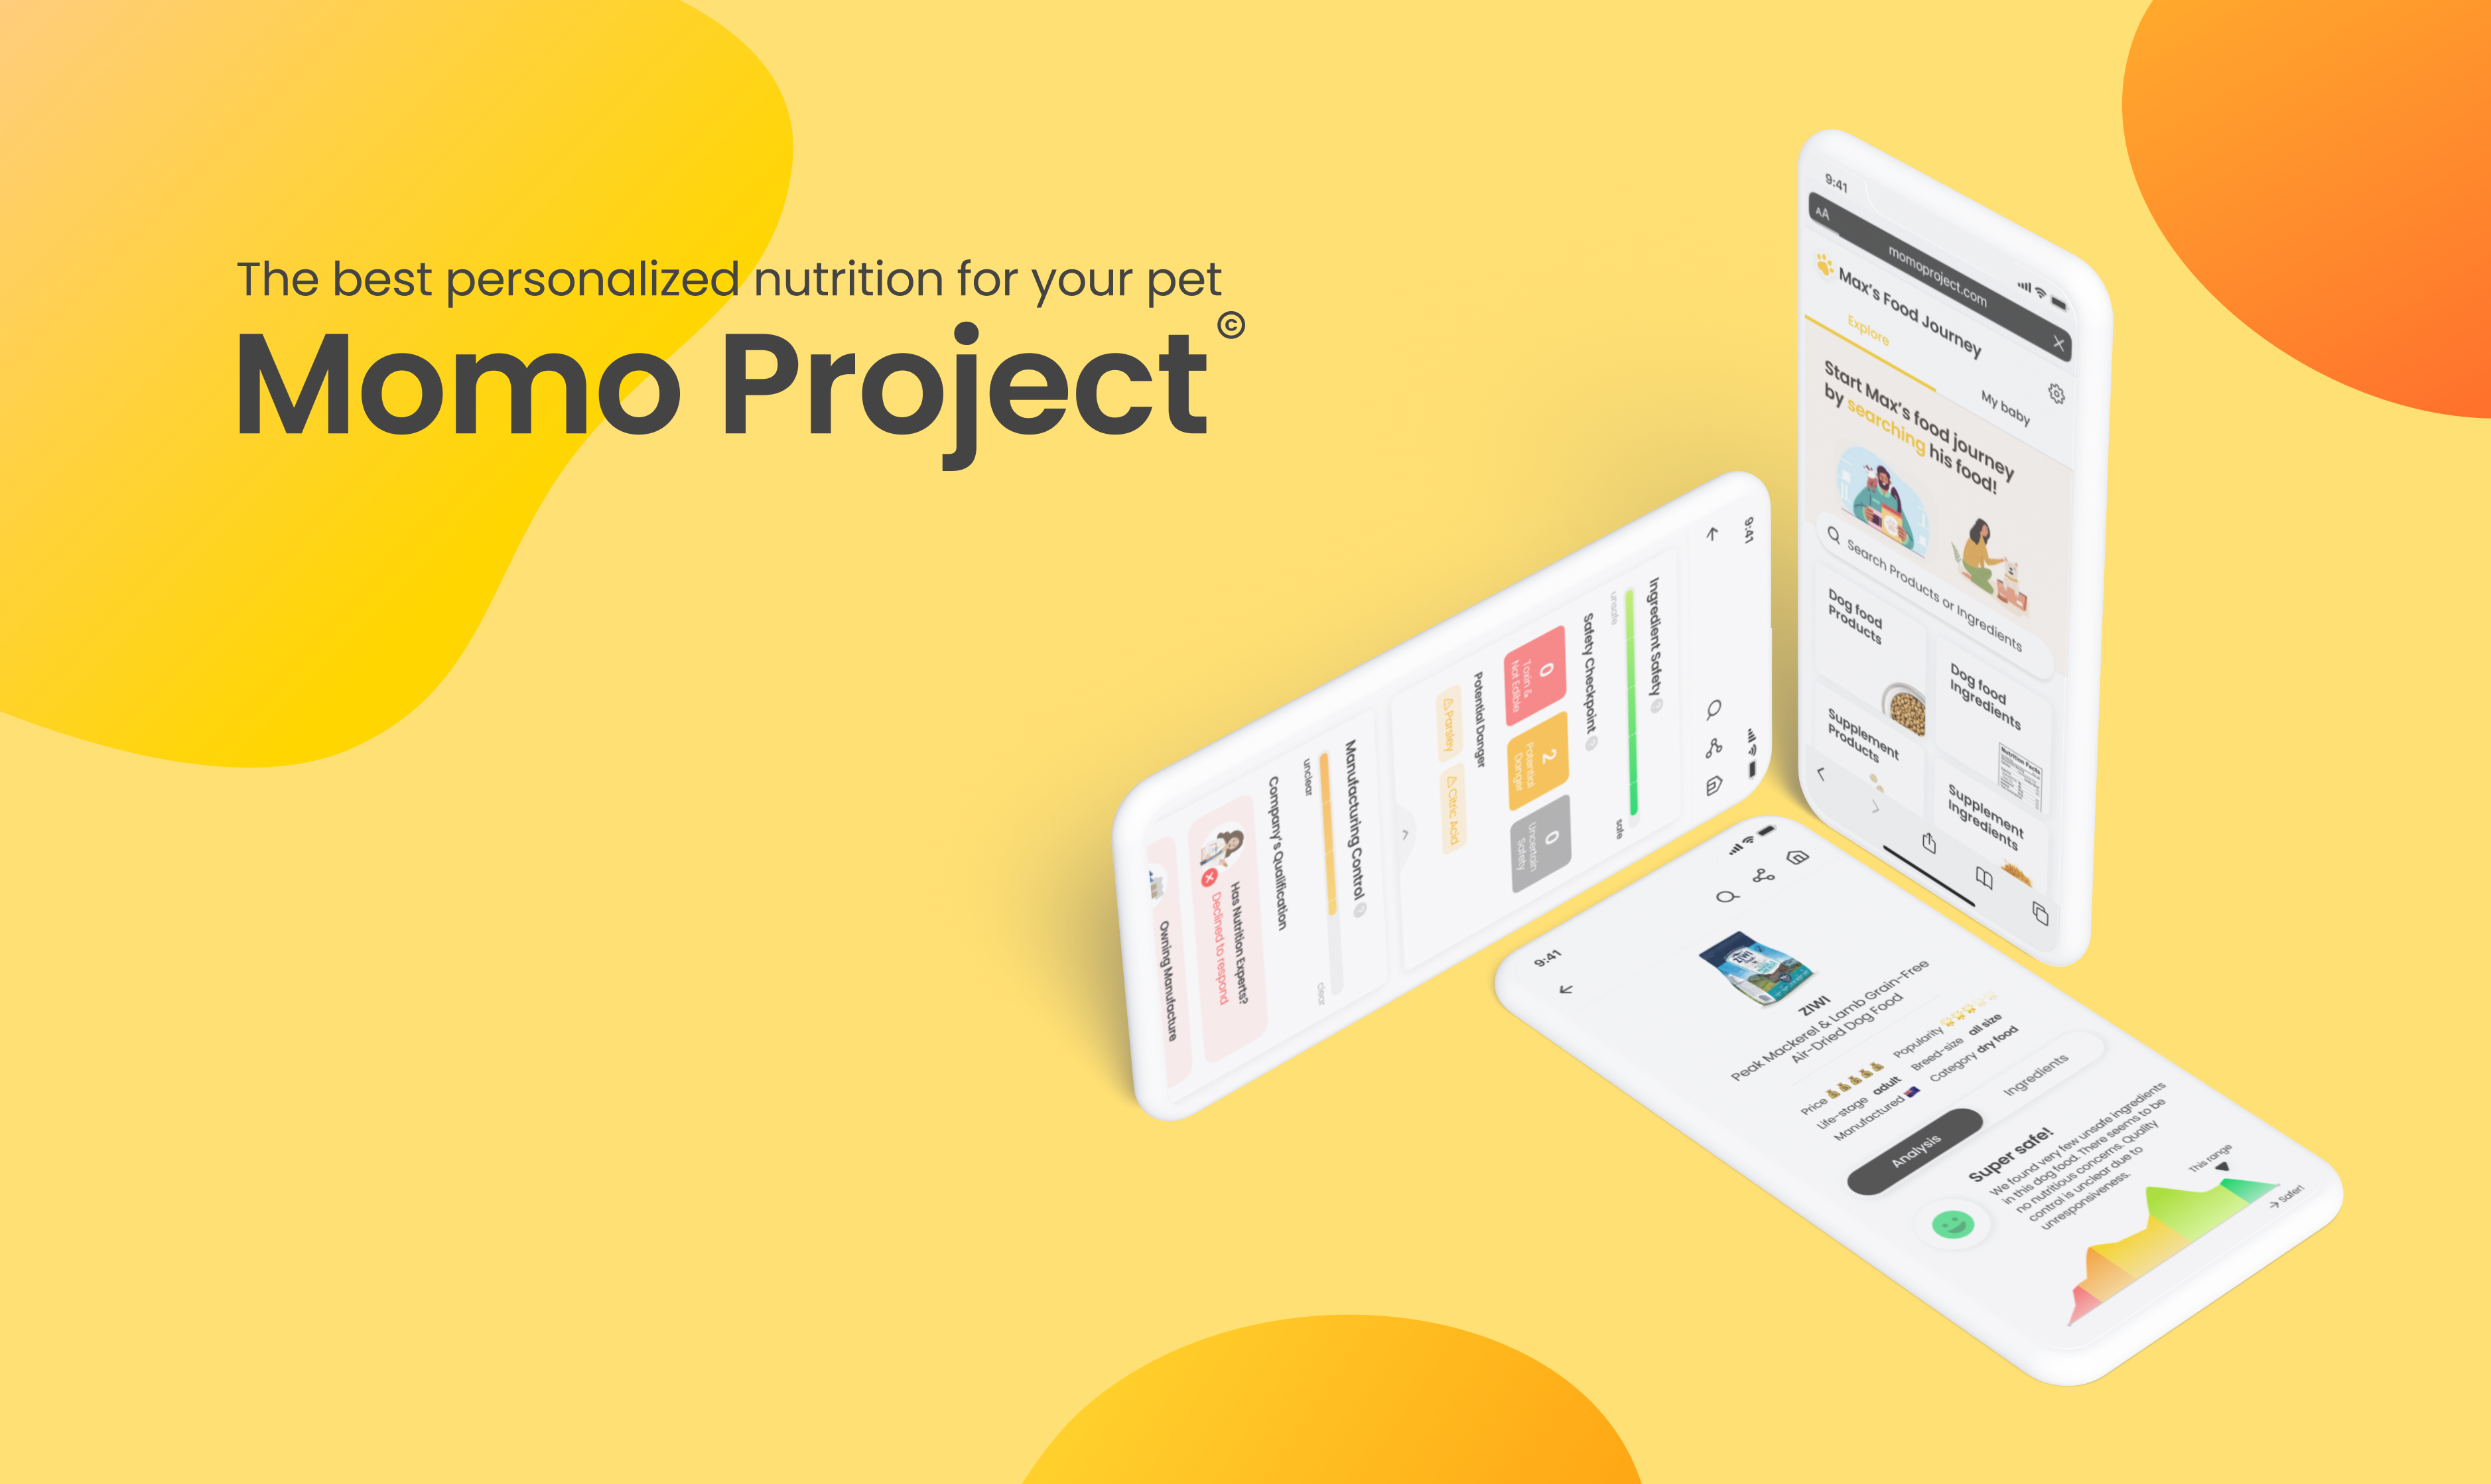 Momo Project Provides Tailored Nutrition for Pets